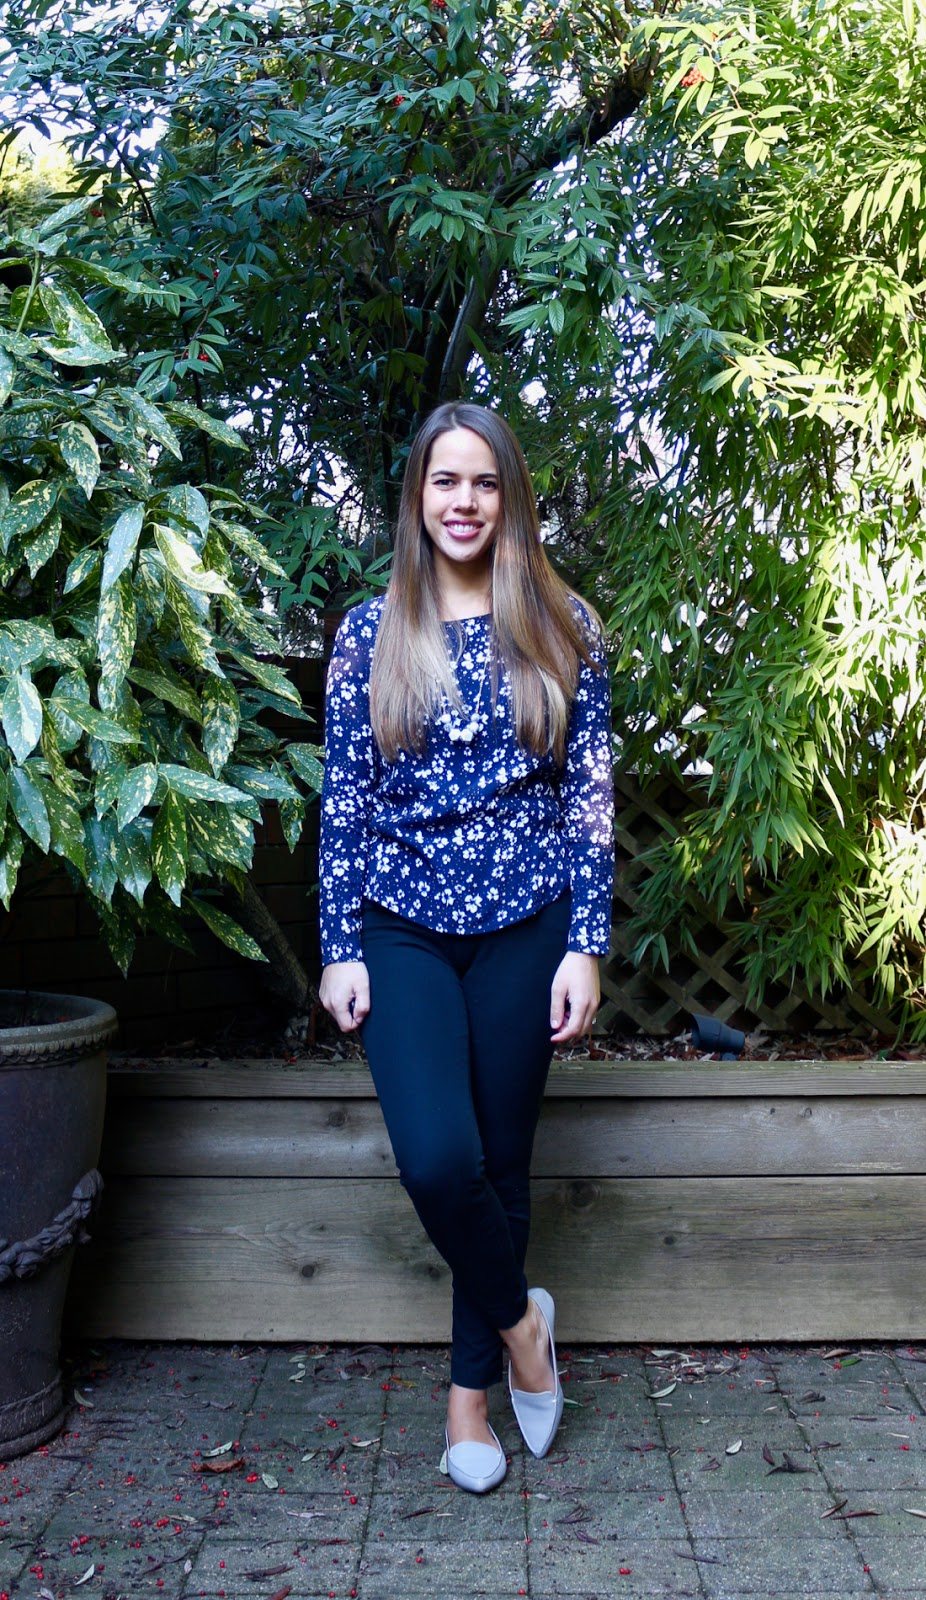 Jules in Flats - Long Sleeve Floral Blouse (Business Casual Winter Workwear on a Budget)